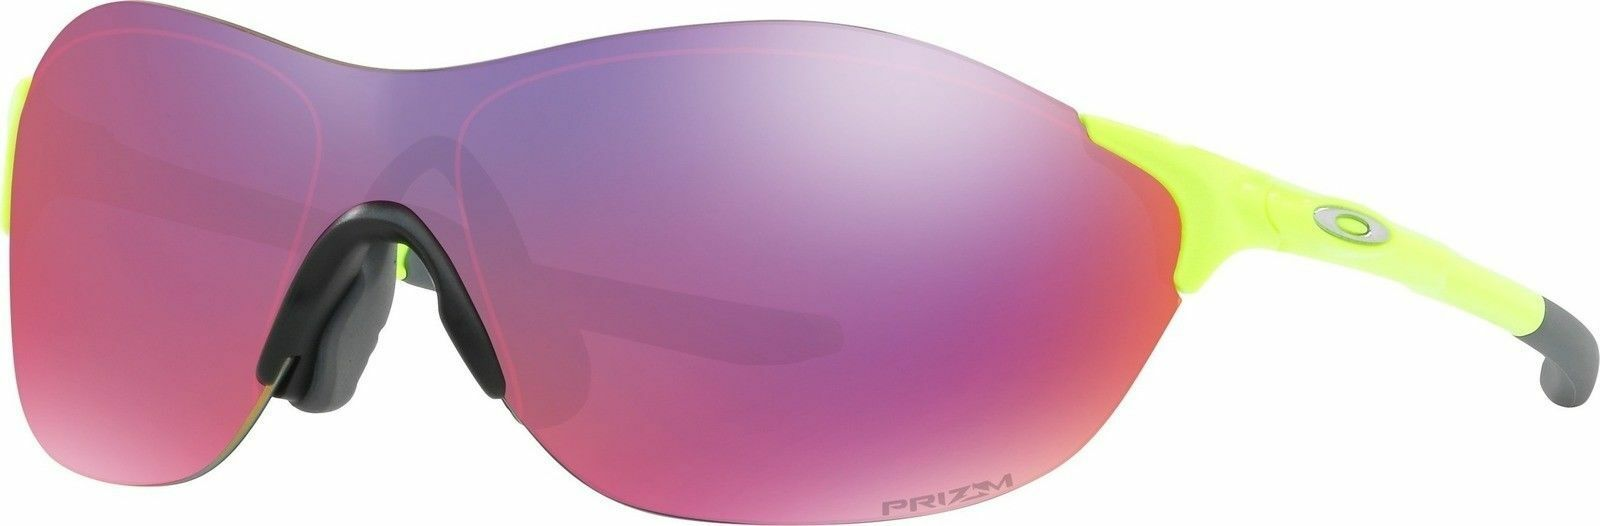 Oakley EVZero Swift Retina Prizm Road Asian Fit Sunglasses (OO9410-0438) - OO9410-0438